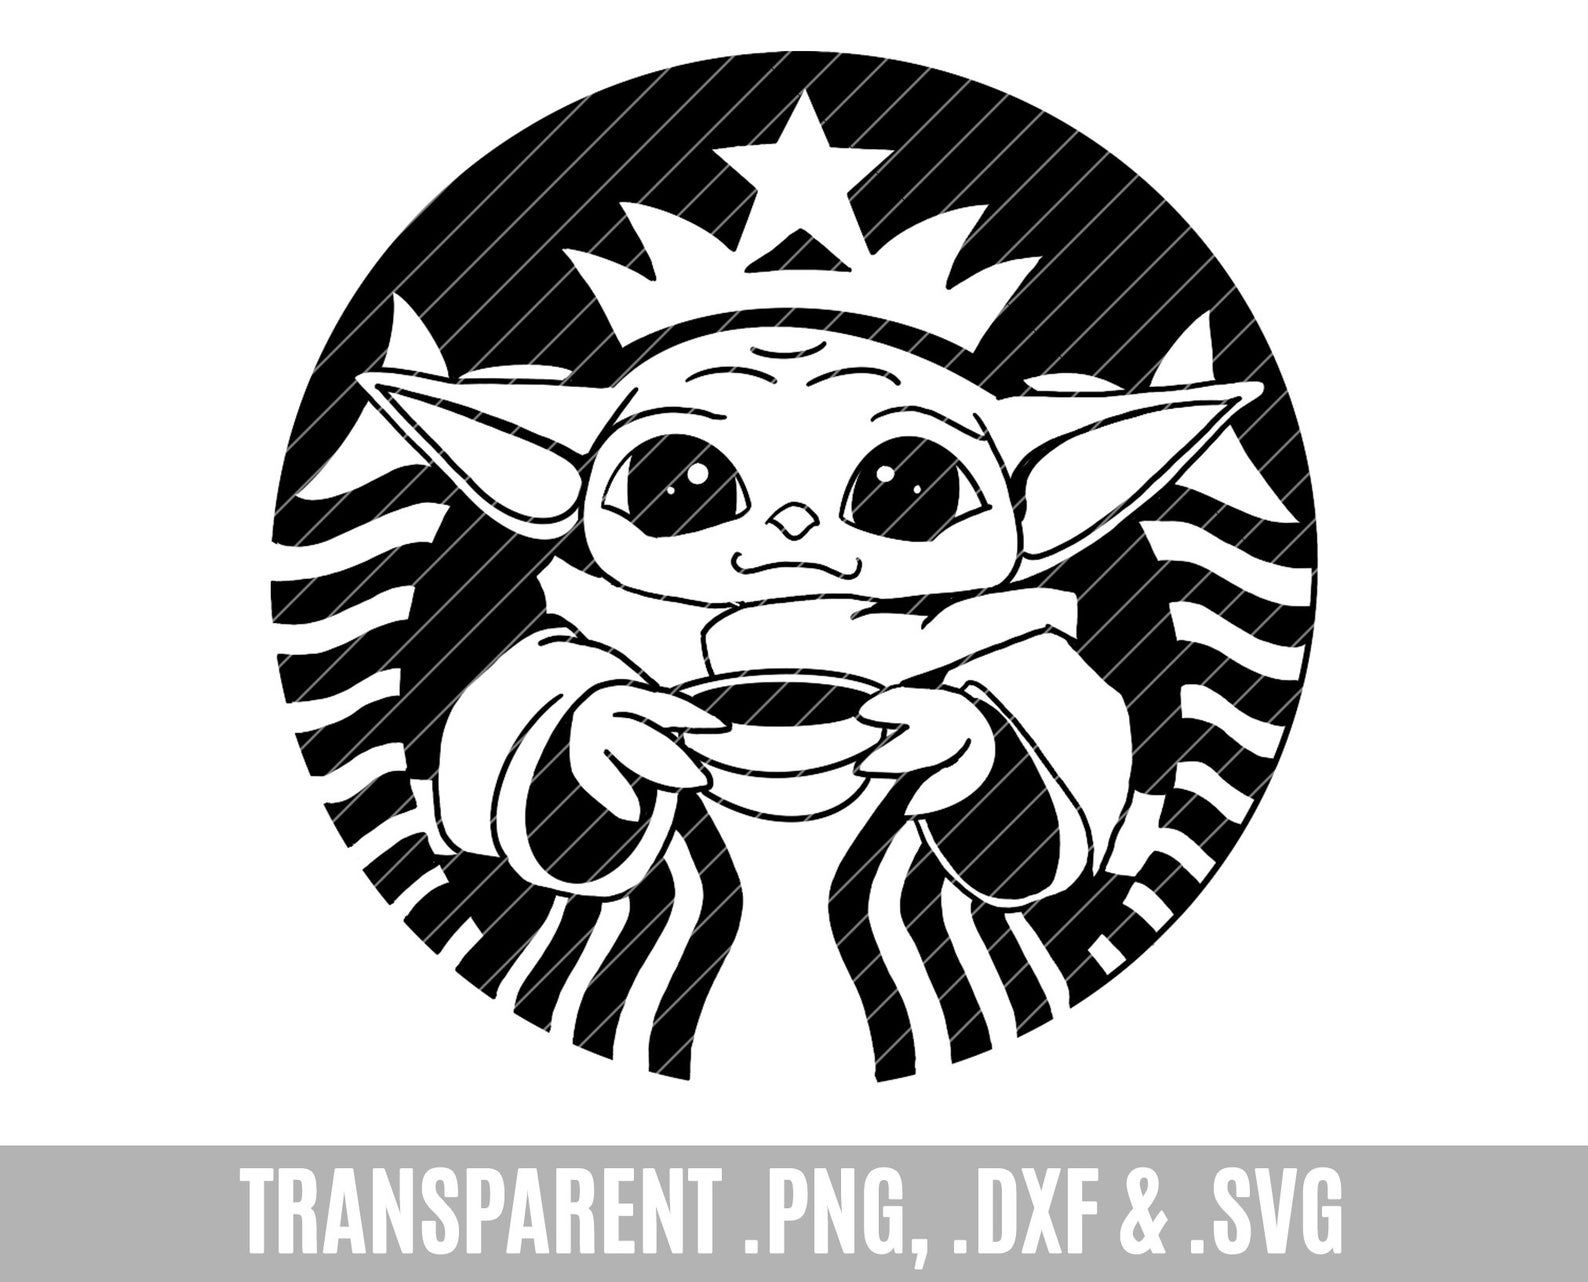 Baby Yoda Svg The Mandalorian The Child Baby Yoda Png Star Wars Svg Png The Child Png Graphic T Shirt Design Star Wars Silhouette Yoda Drawing Star Wars Baby